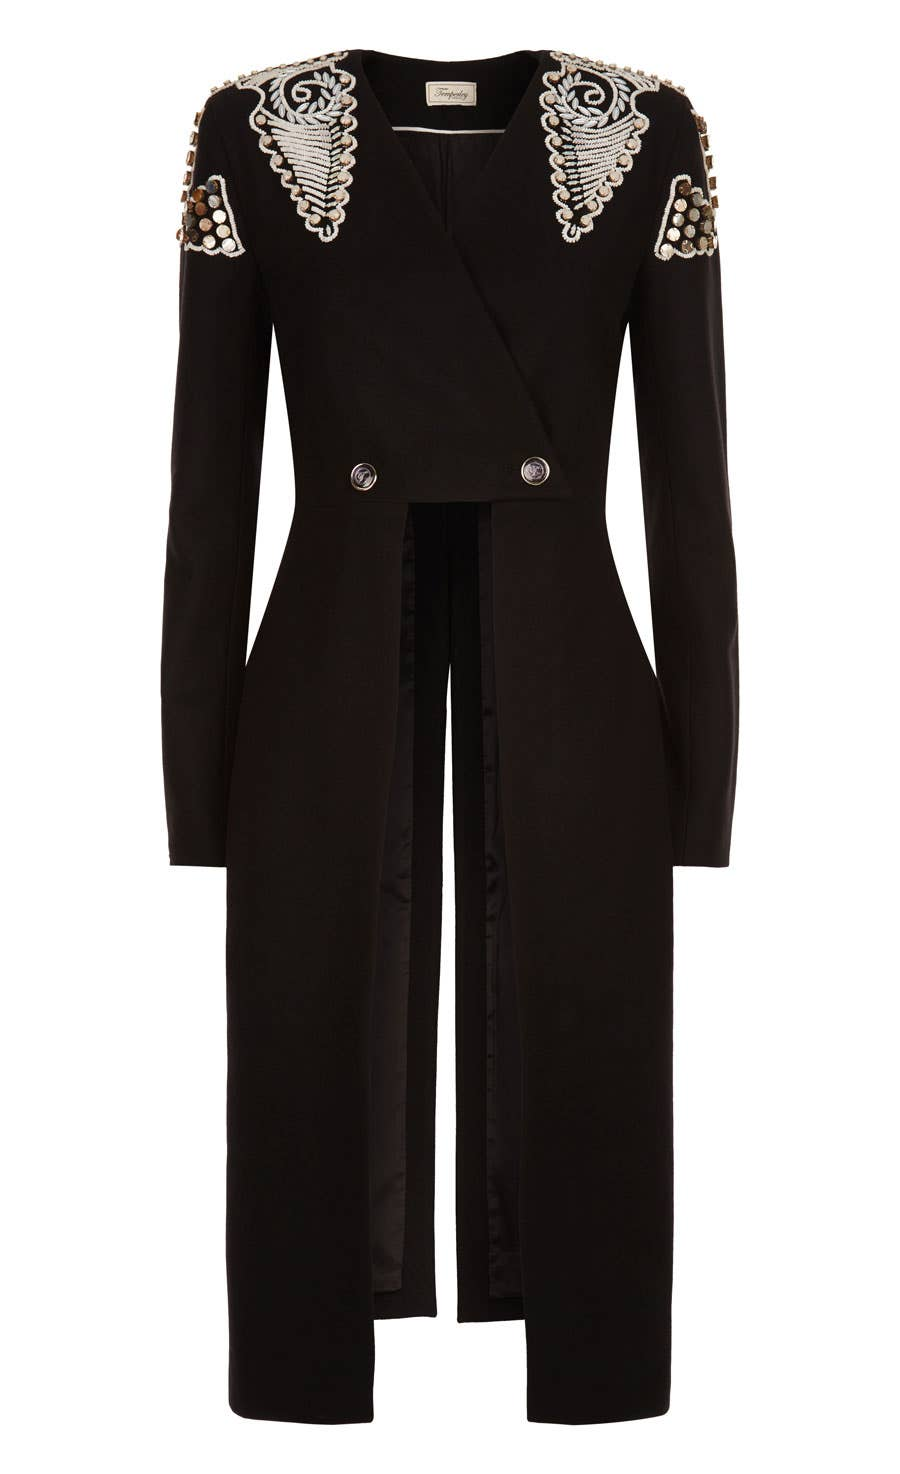 Empire Evening Coat, Black